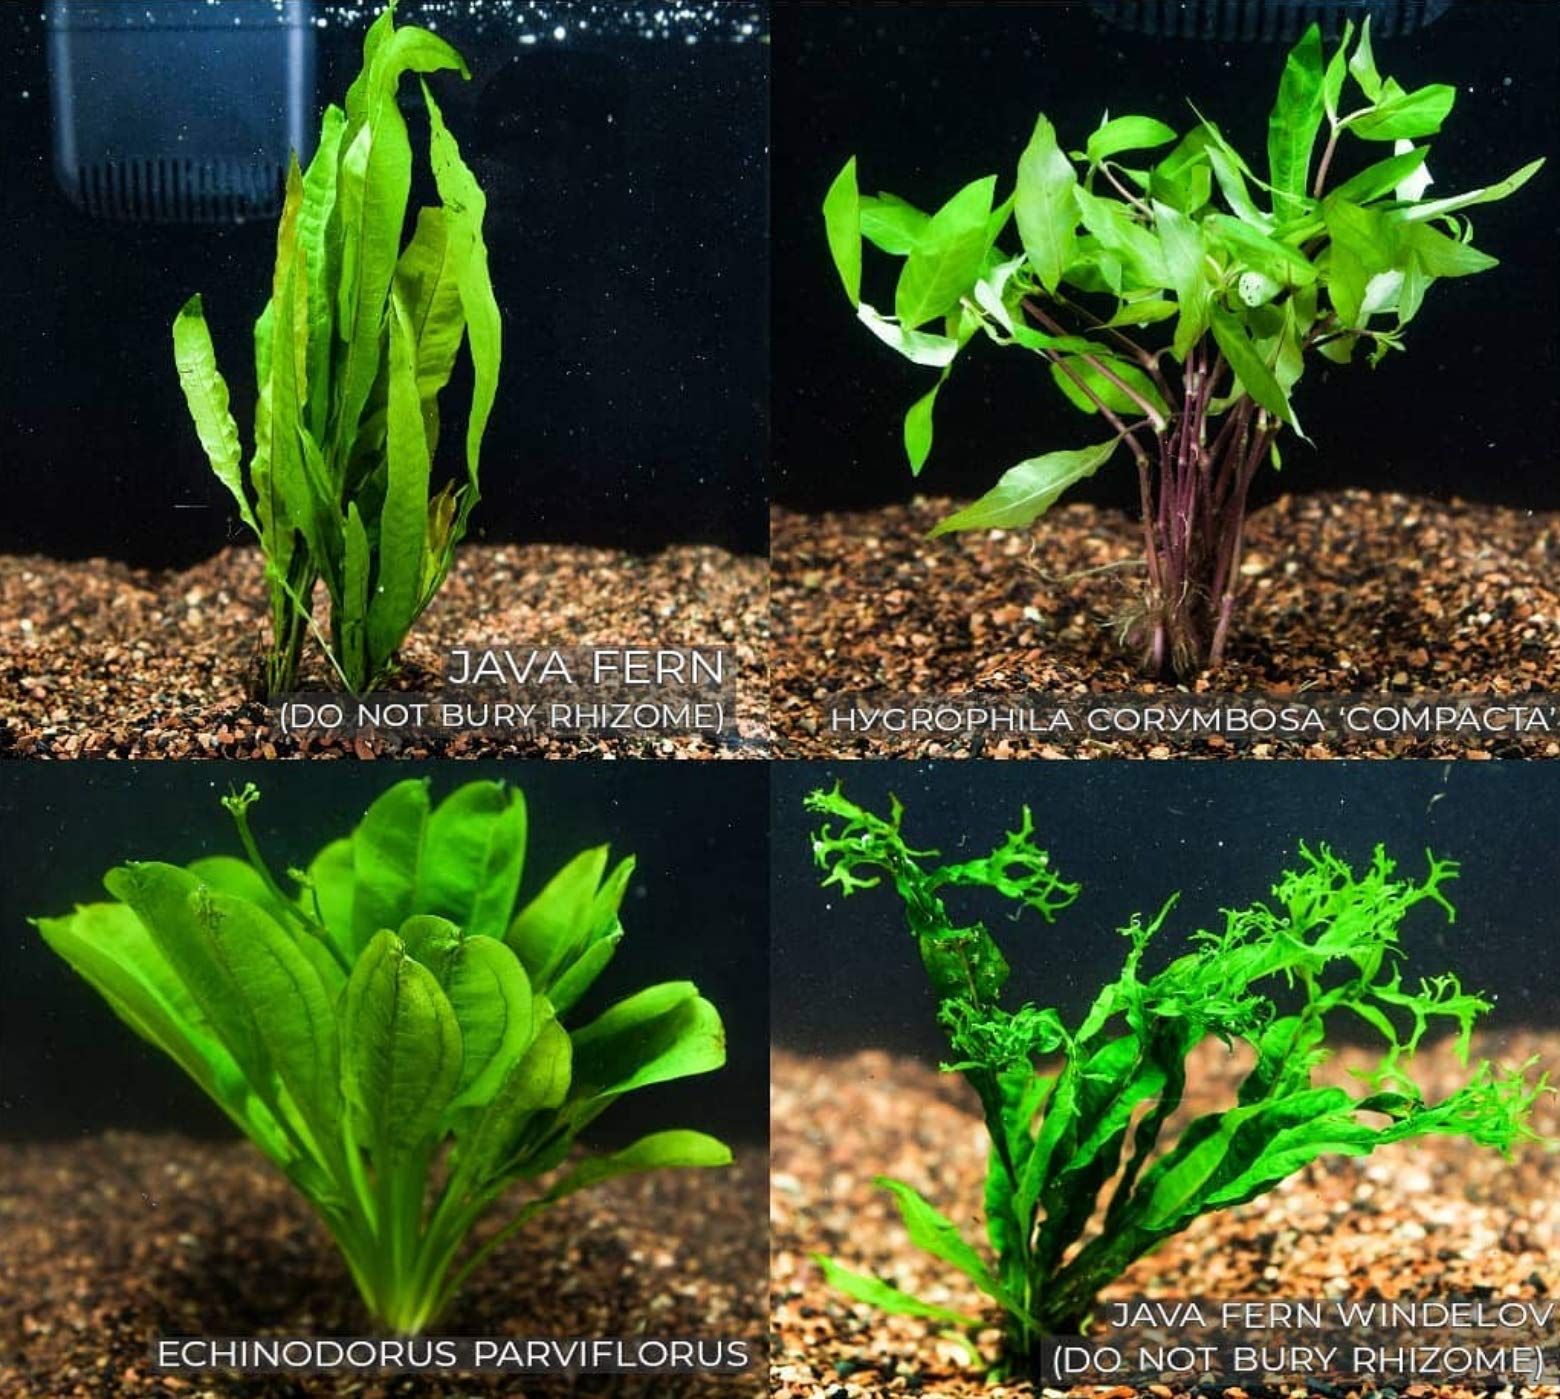 Mainam 4 Species Freshwater Live Aquarium Plant Package Set Java Fern - Rosette Amazon Sword - Hygrophila Corymbosa - Java Fern Windelov by Mainam